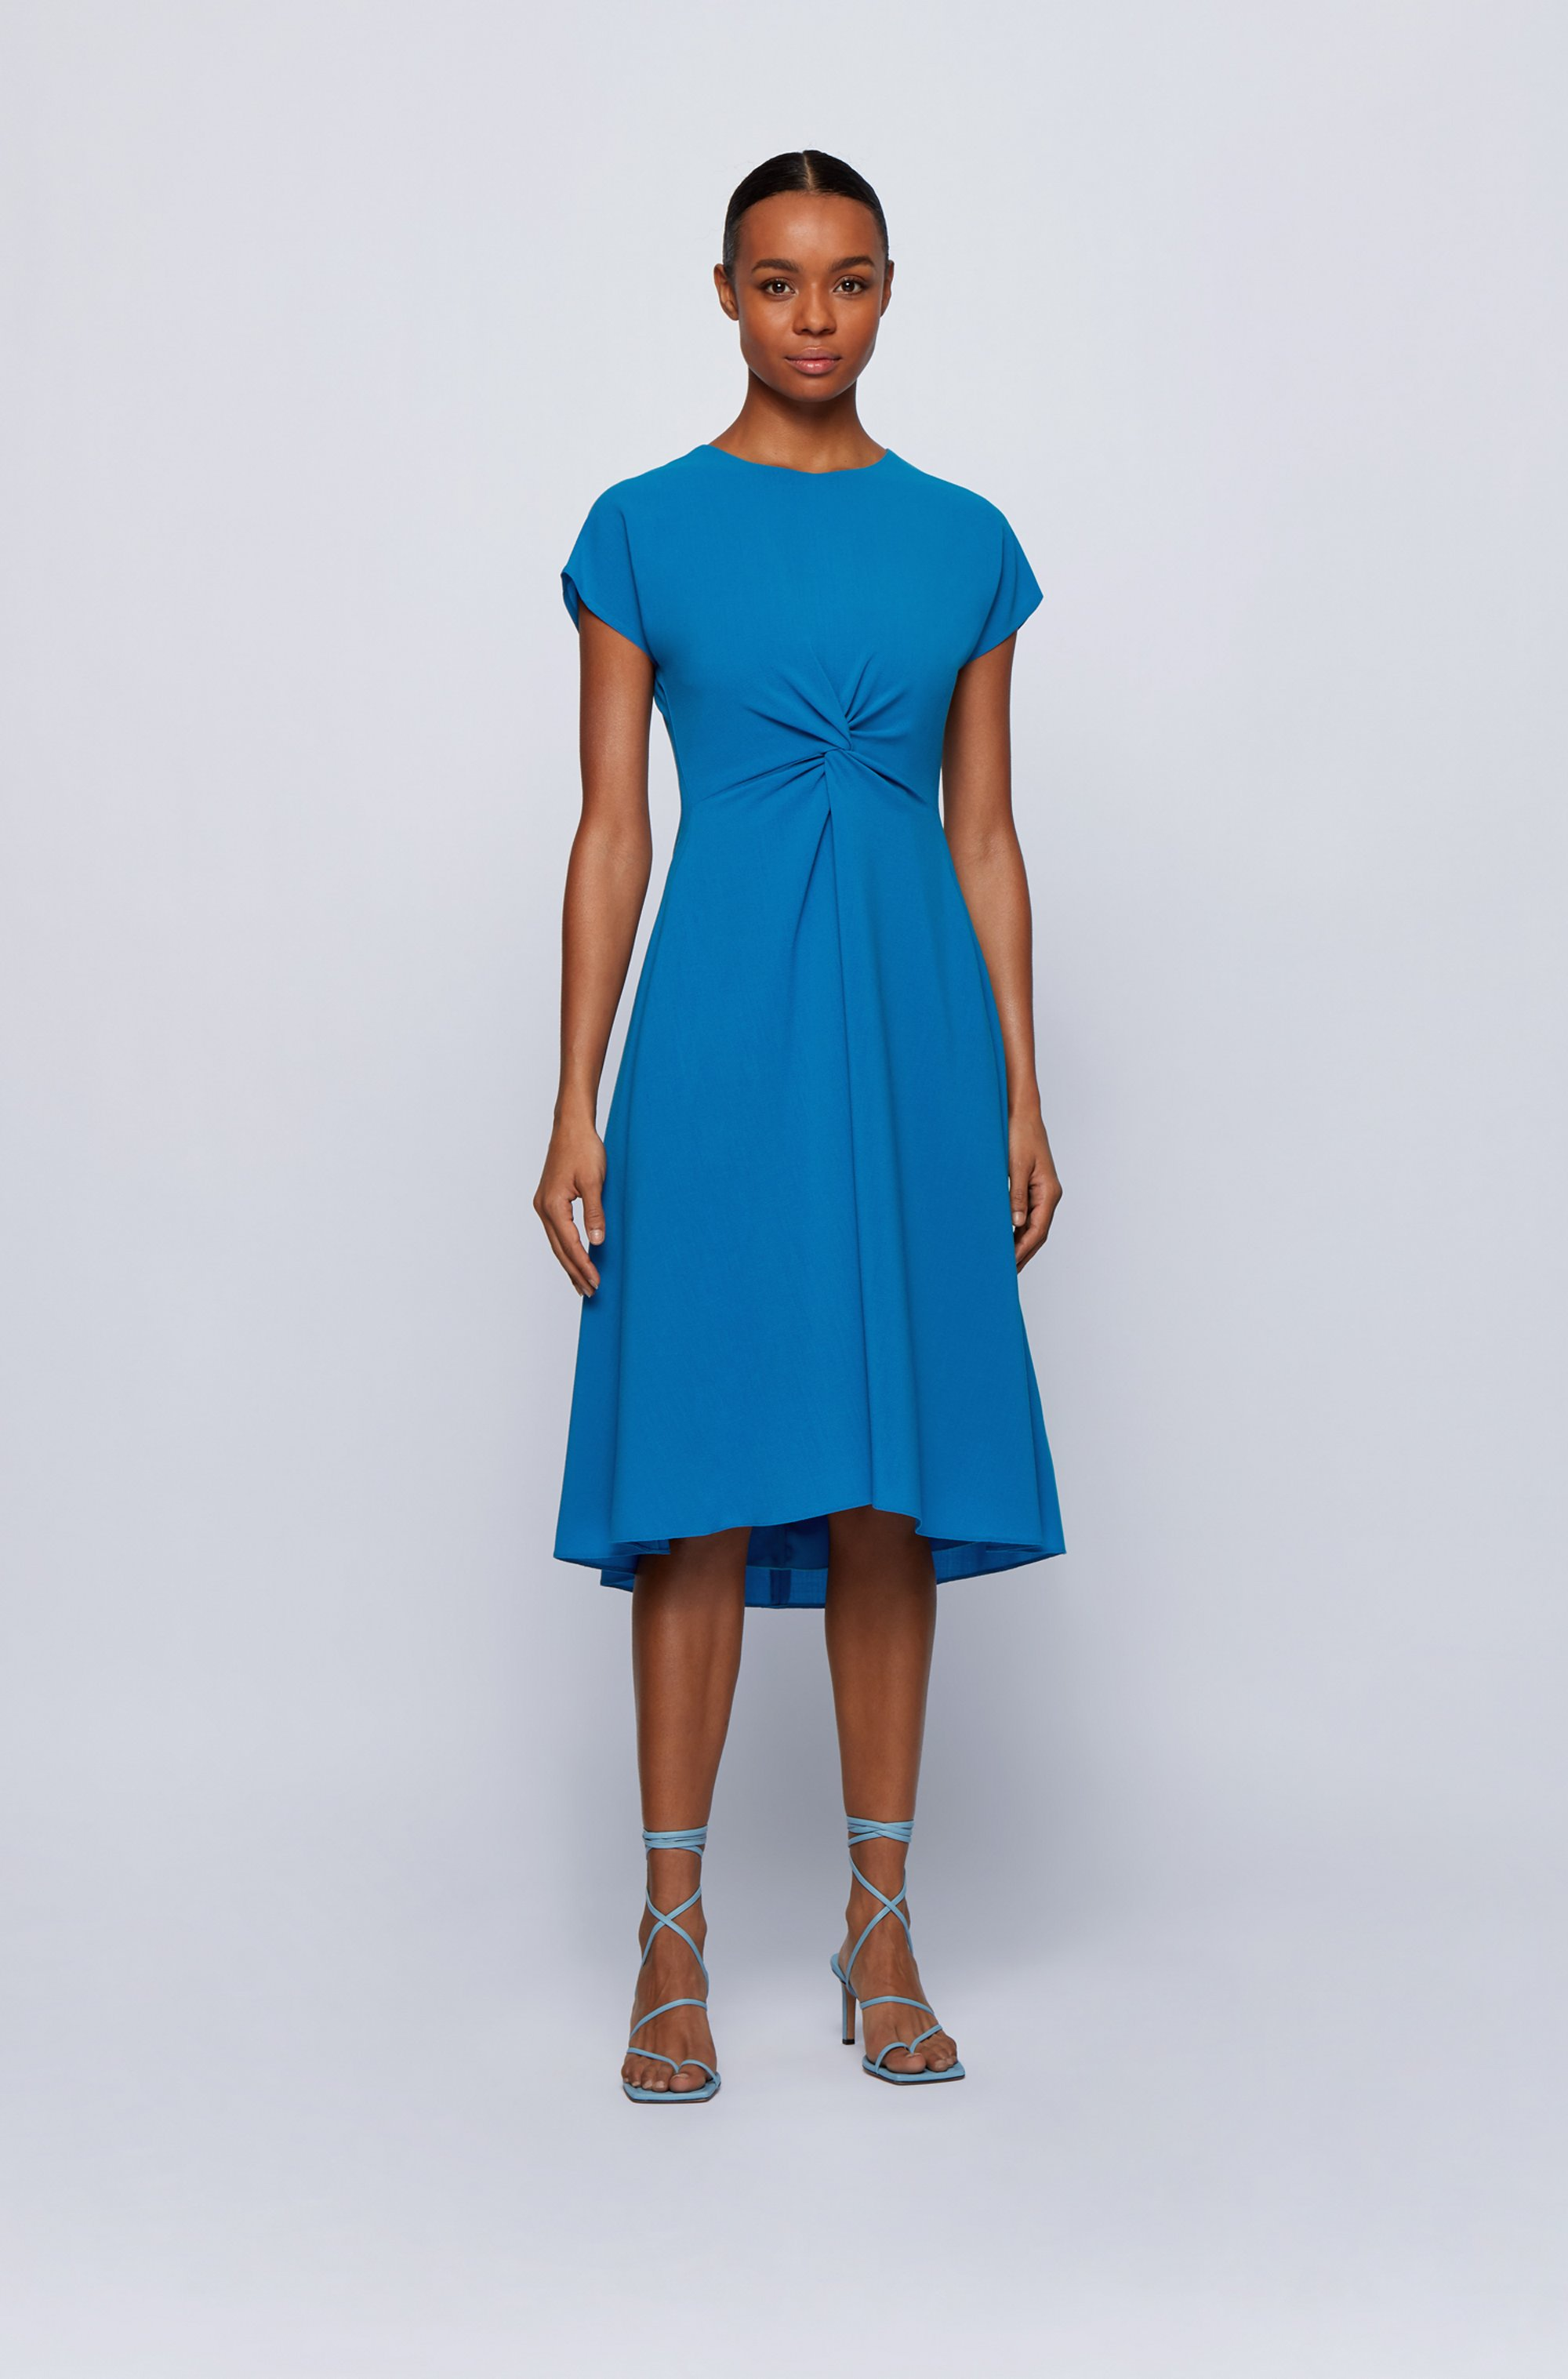 Short-sleeved wool-blend dress with knot detail